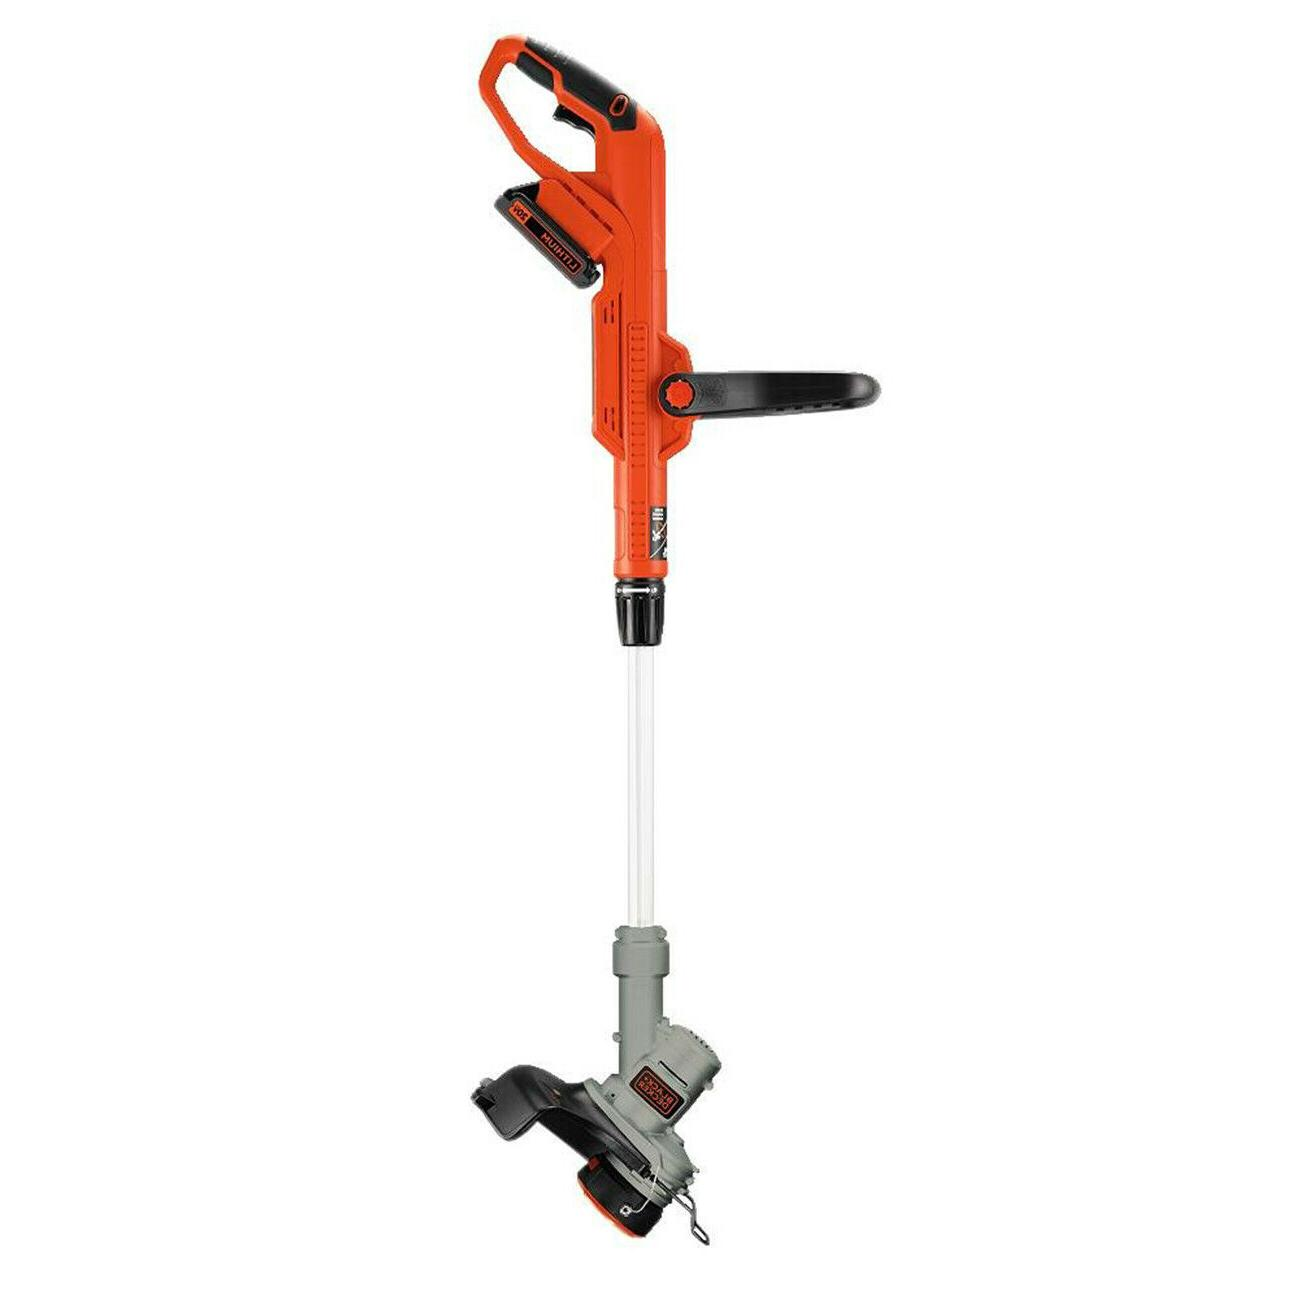 Black and Decker Cordless Weed Eater Grass String